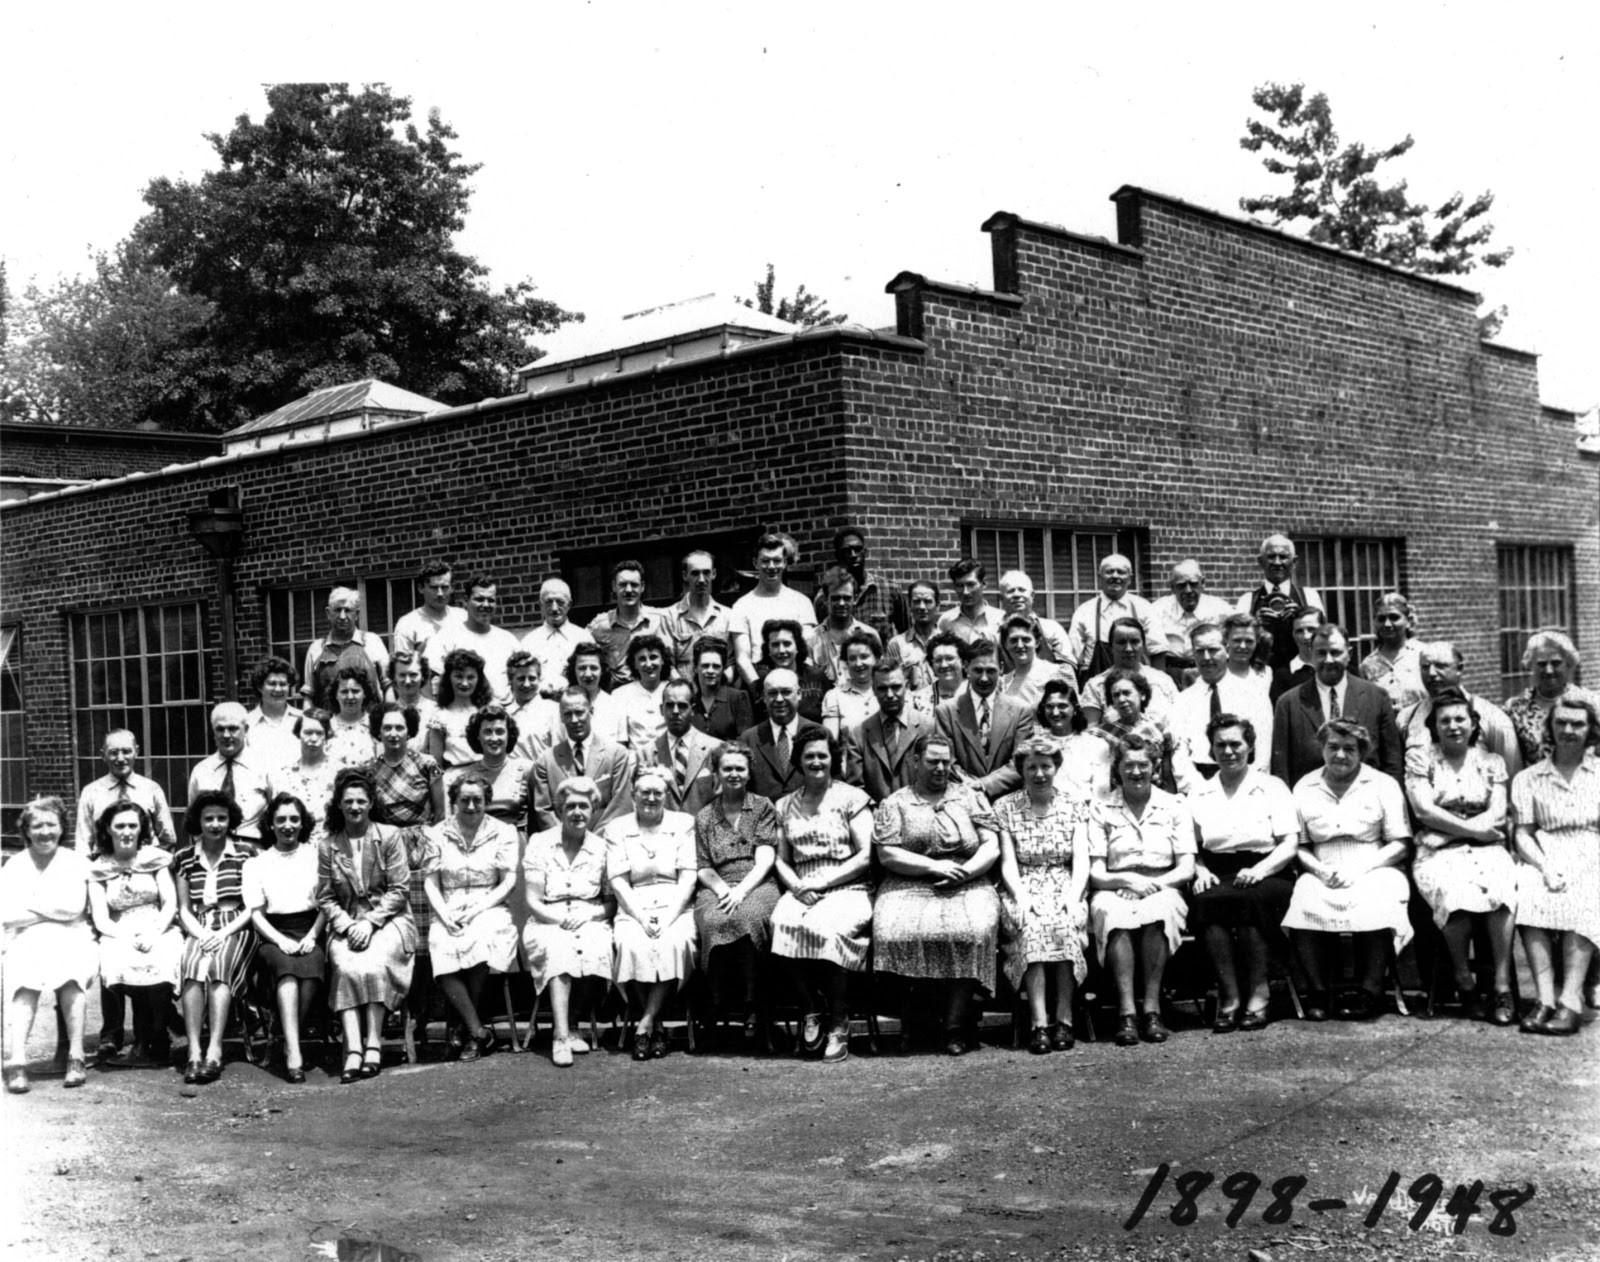 Employees of the plant in 1948